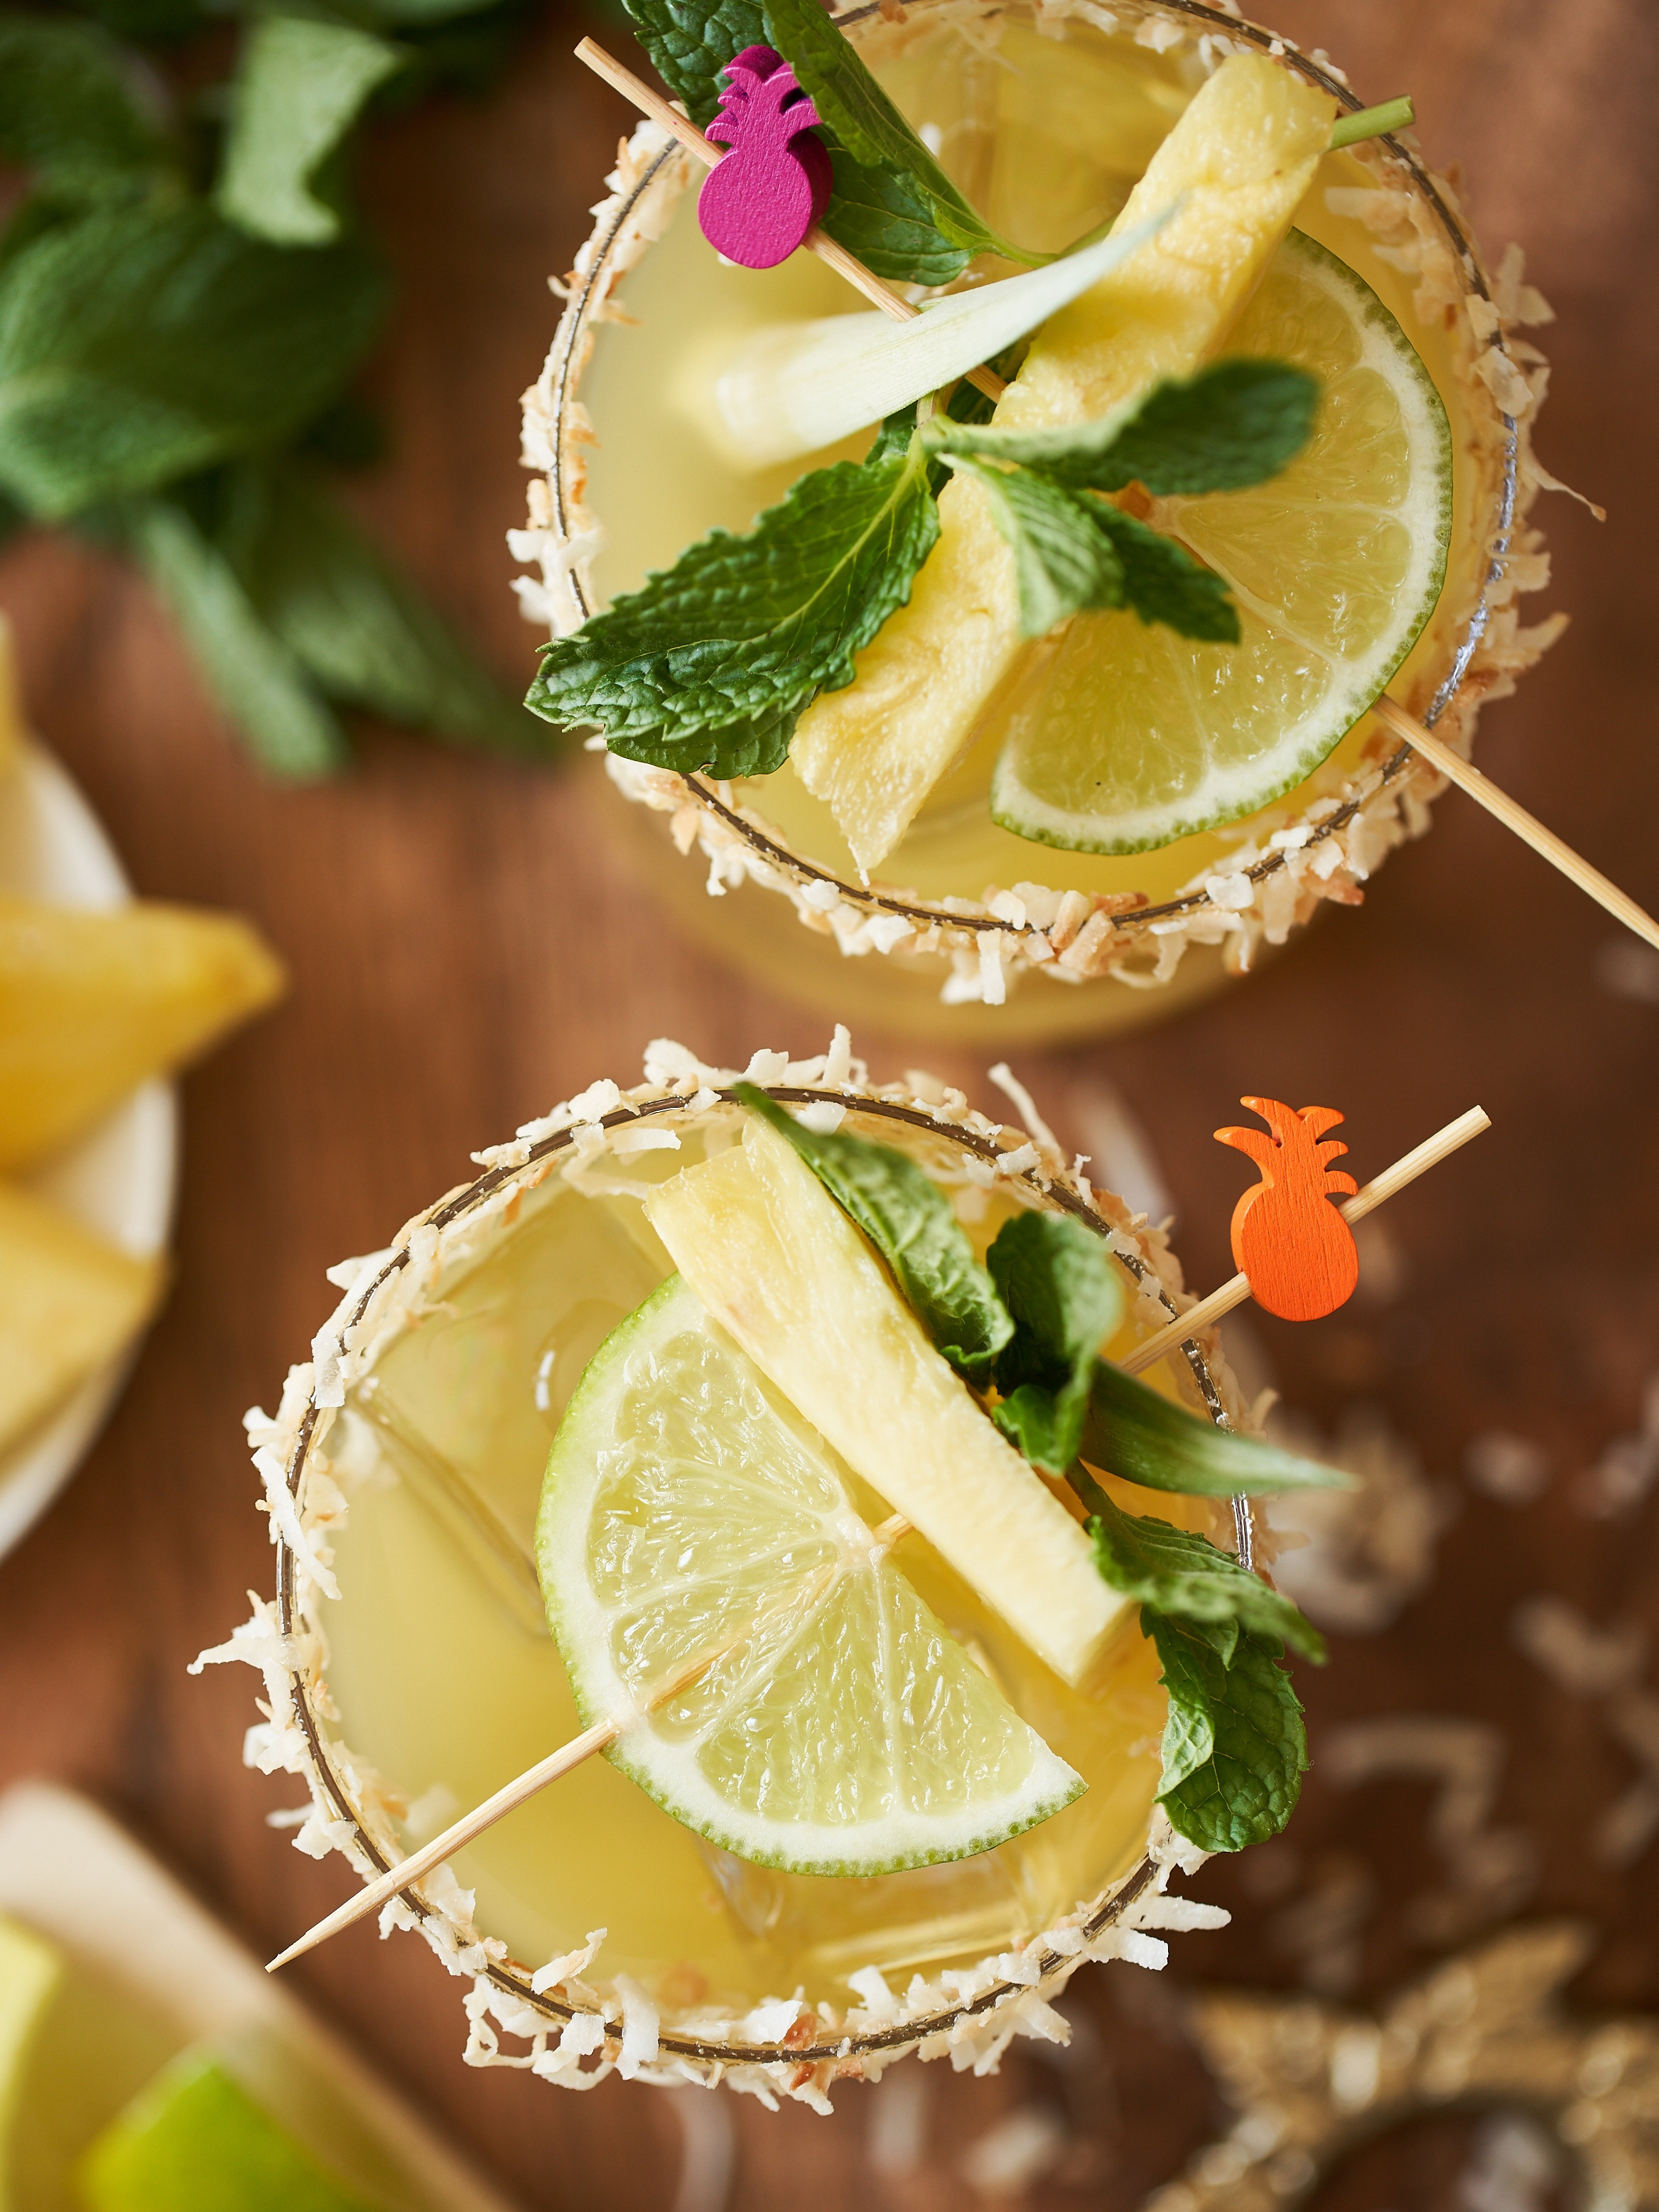 11647_DSL_SocialMedia_FY20_Q1_June_PineappleMojitos_FB_Approved.jpg